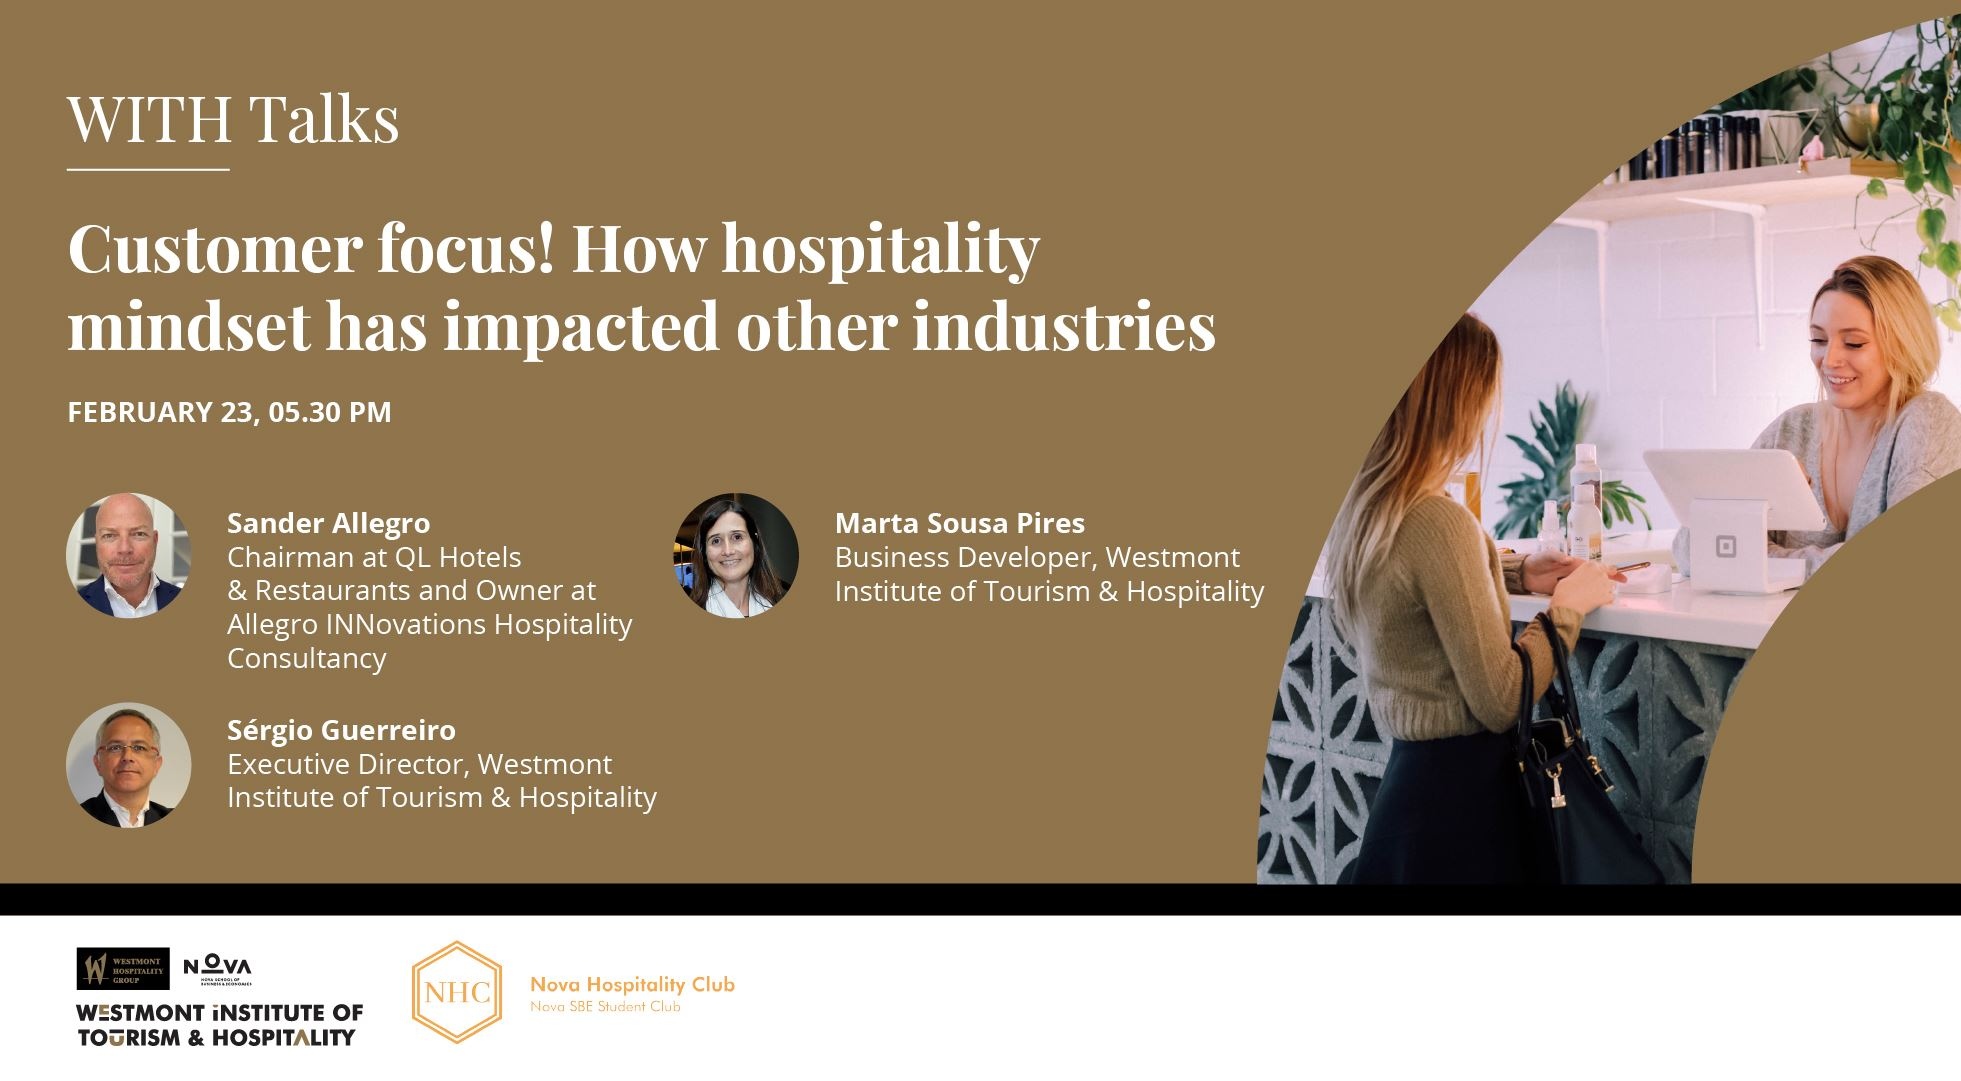 Customer focus! How hospitality mindset has impacted other industries' with Sander Allegro